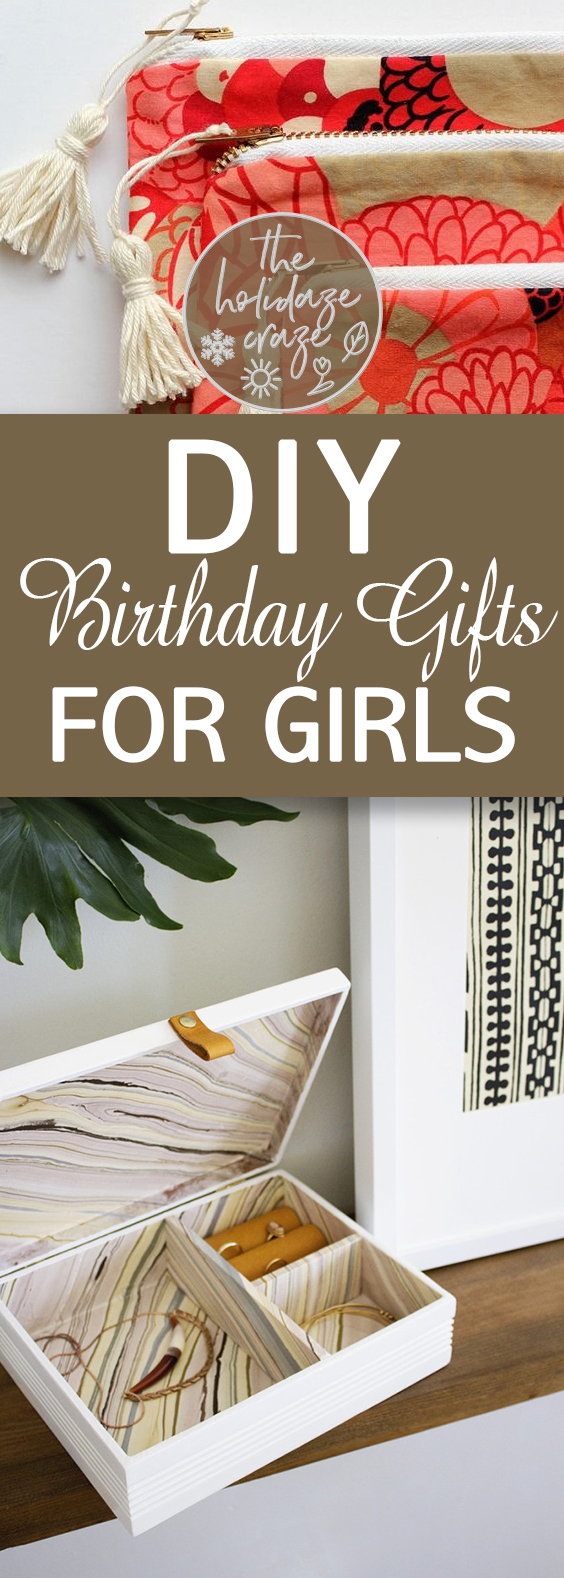 Birthday Gifts | DIY Birthday Gifts | DIY Birthday Gifts for Girls | Handmade Birthday Gifts | Birthday Celebration | Birthday